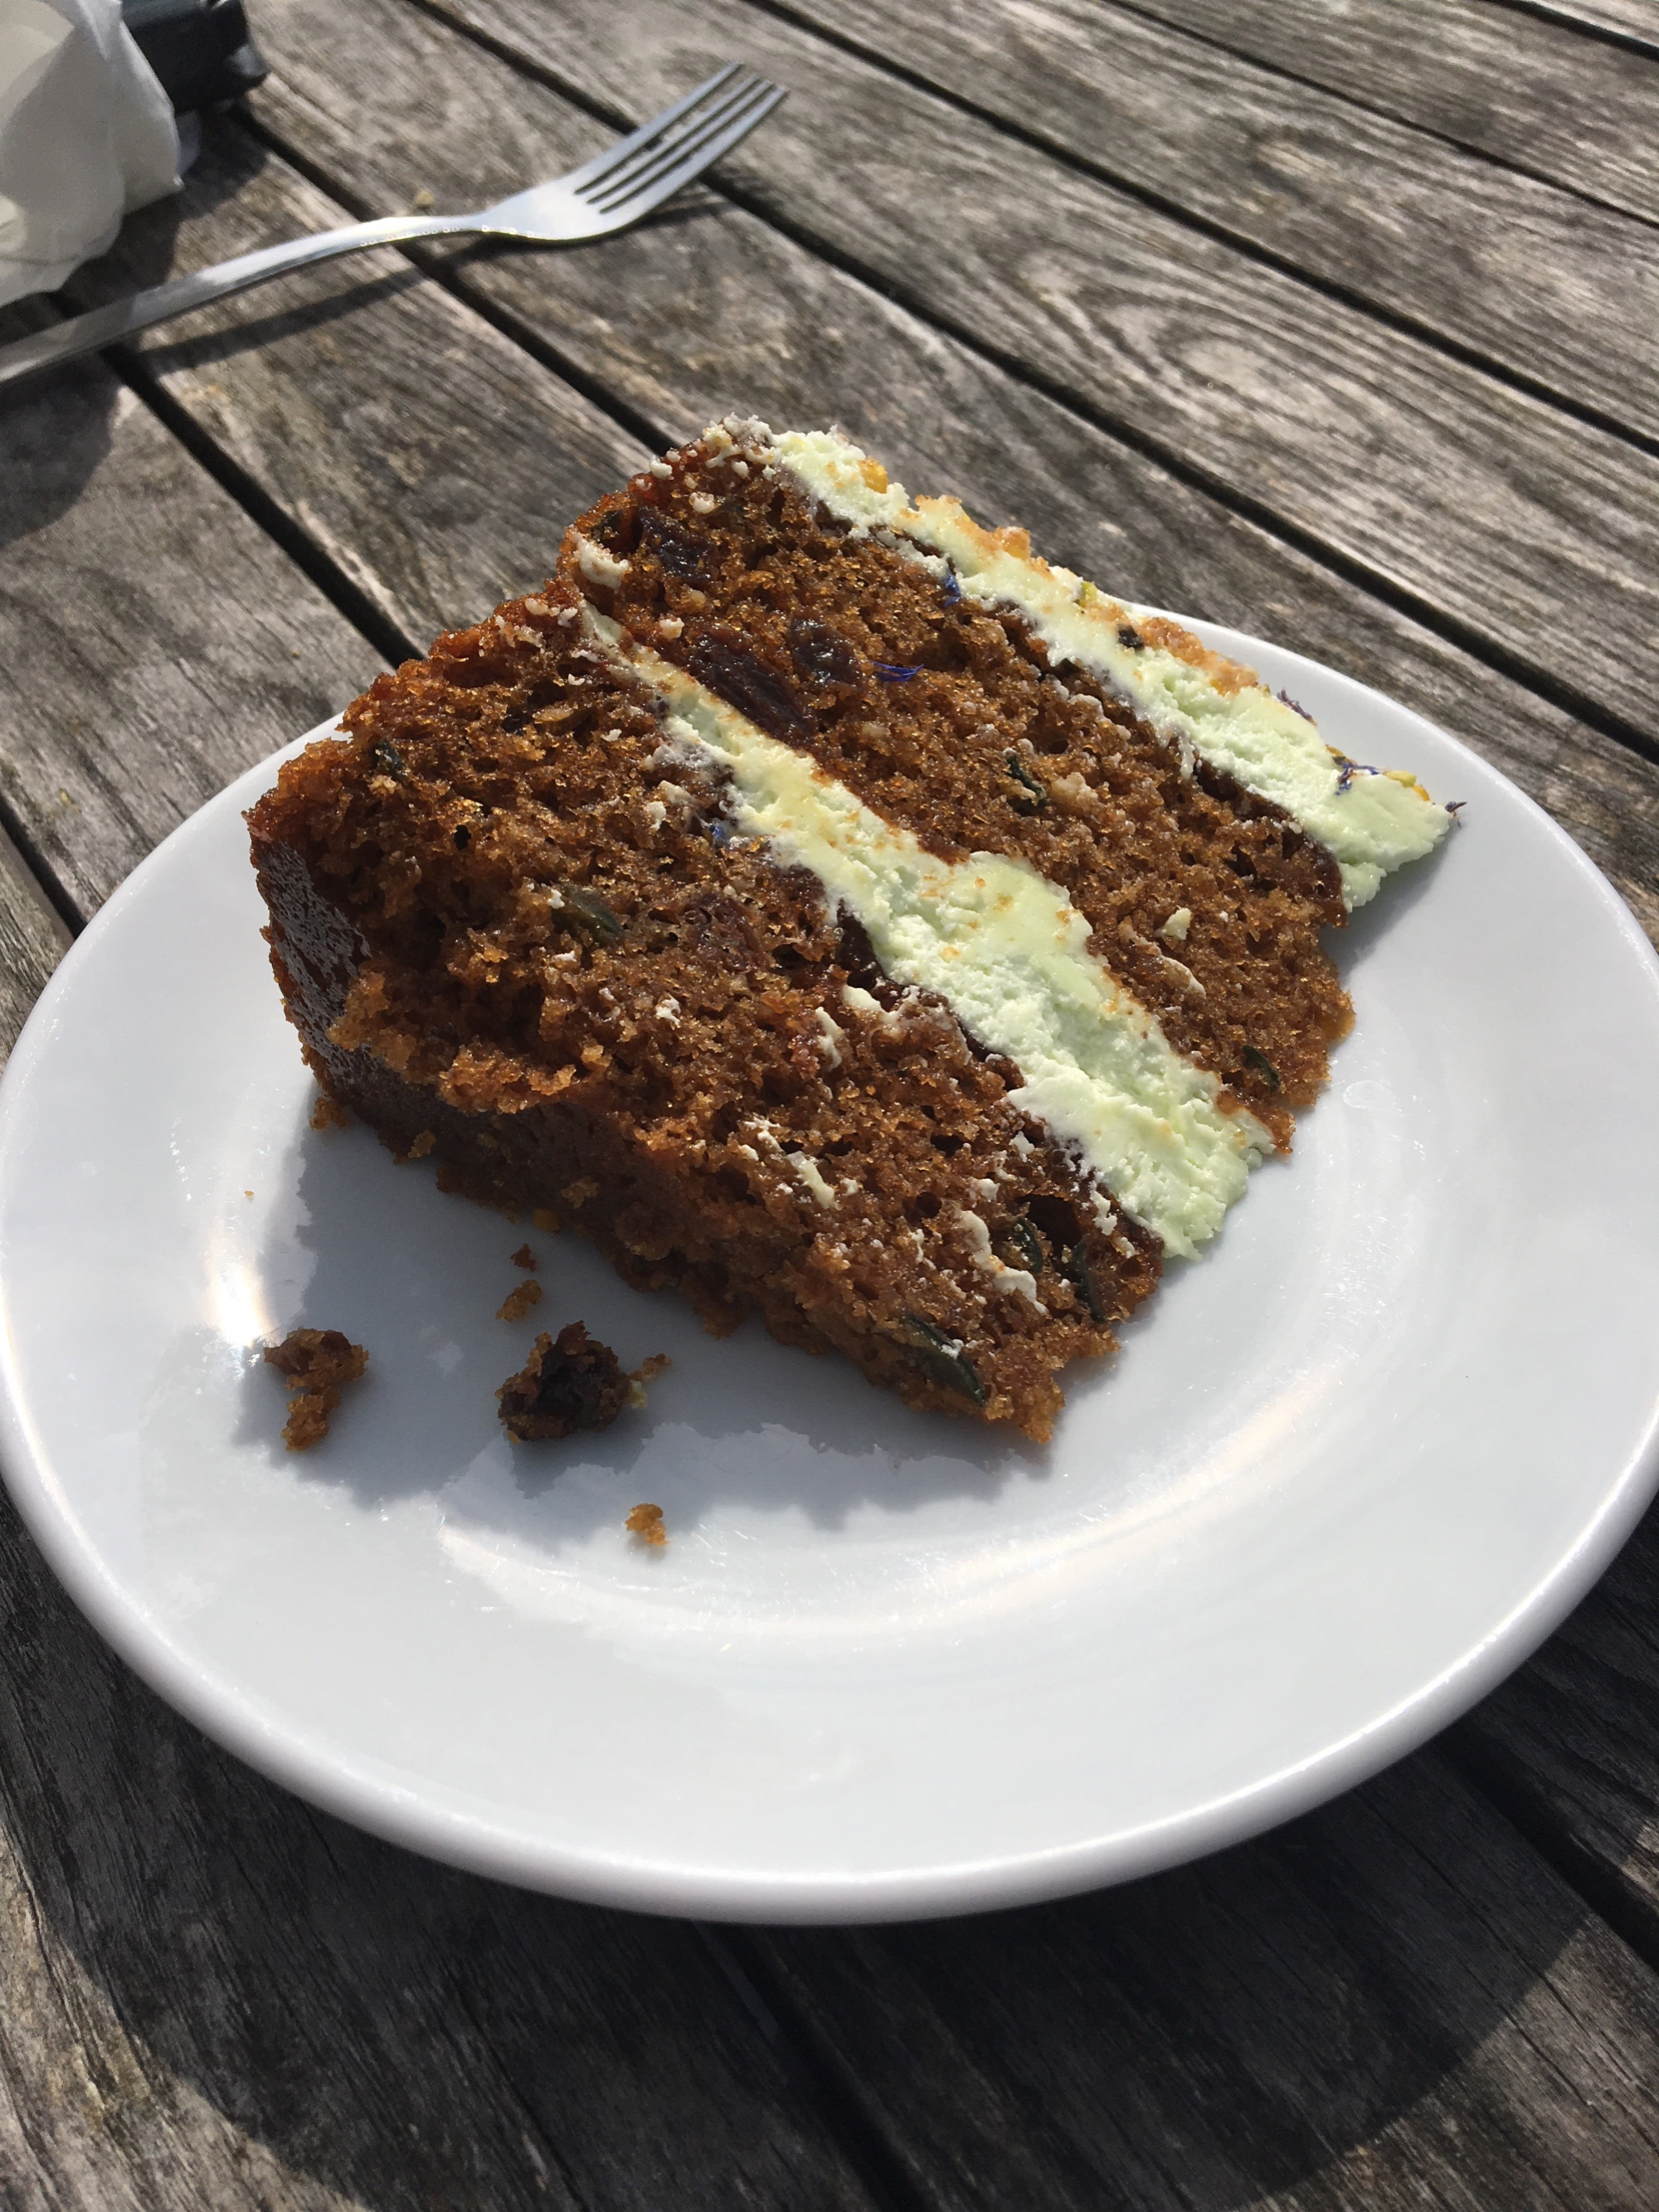 Courgette And Avocado Gluten Free Cake